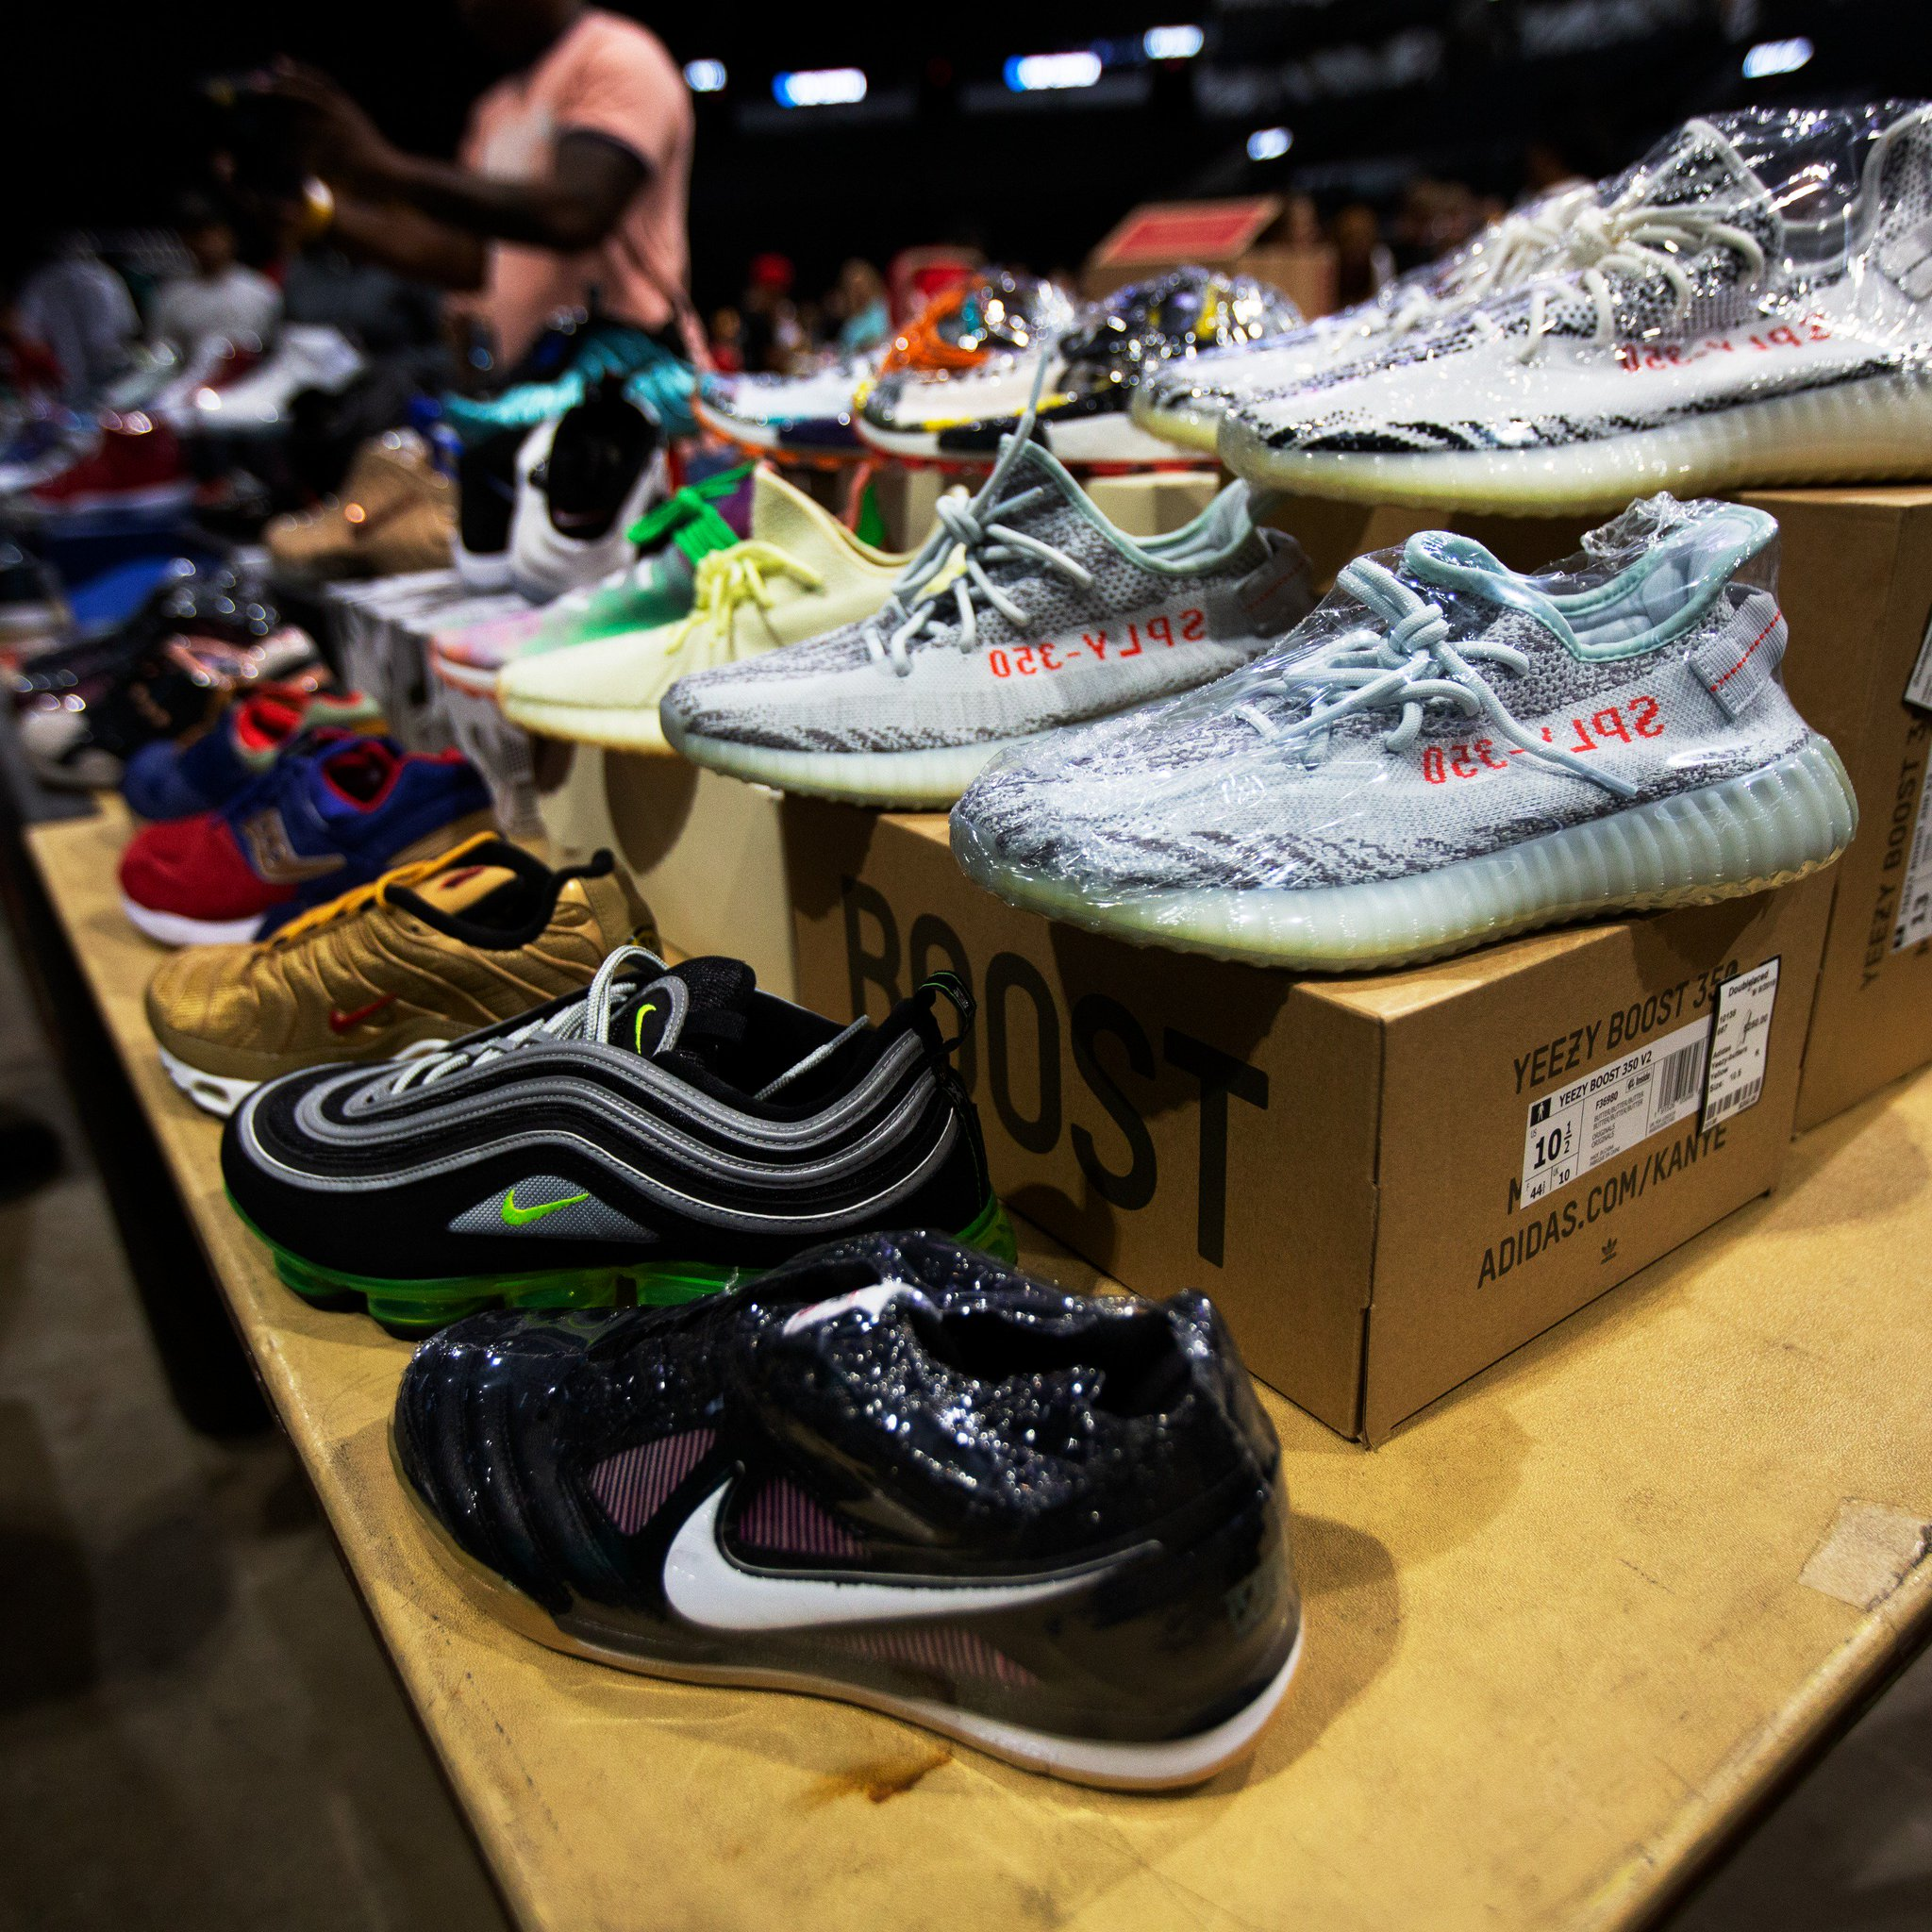 Scenes from the 2018 Spurs Sneaker Jam. ����  Full gallery: https://t.co/HPGxweb4O8 https://t.co/3N3KZWNSkf